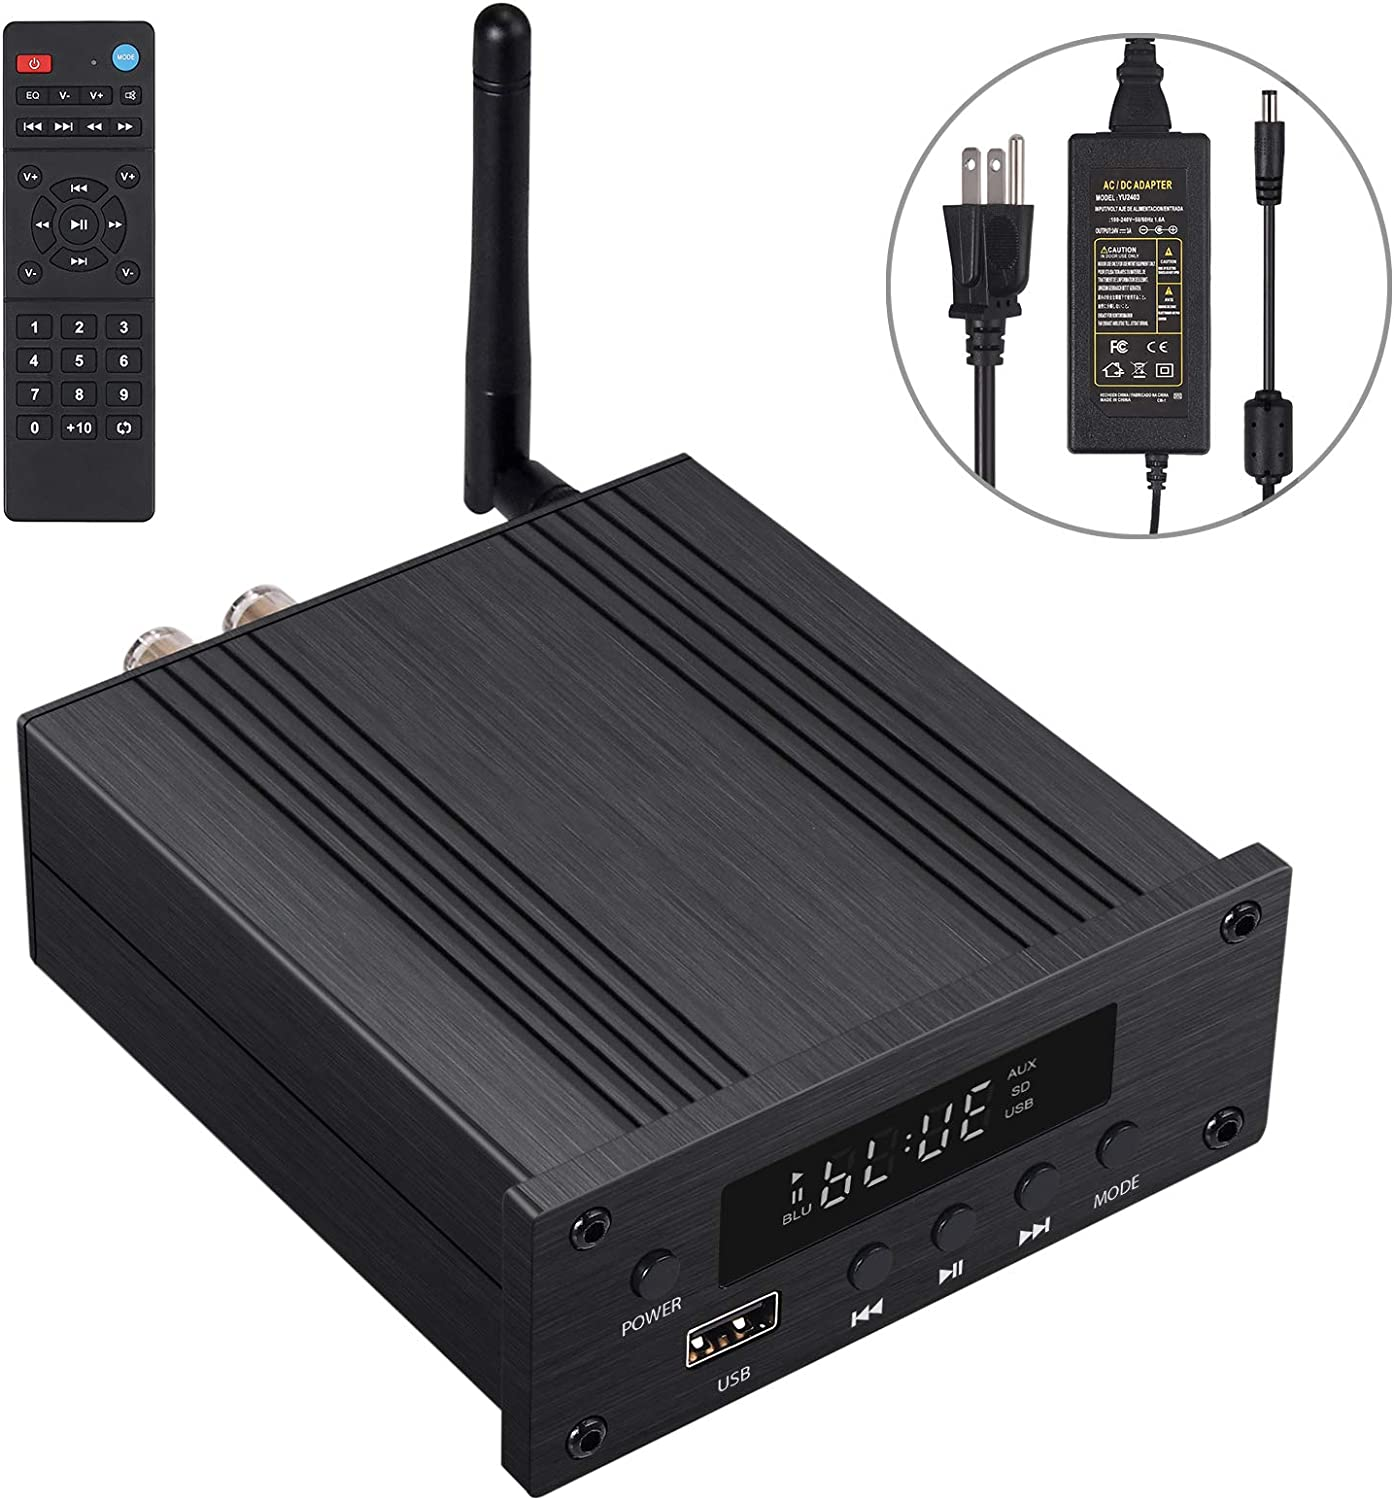 Proster 192kHz/24bit Stereo Audio Amplifier Bluetooth 5.0 Receiver Hi-Fi Digital Power Amplifier DAC Optical Coaxial USB to Analog Audio Converter for Passive Speakers 100W + 100W